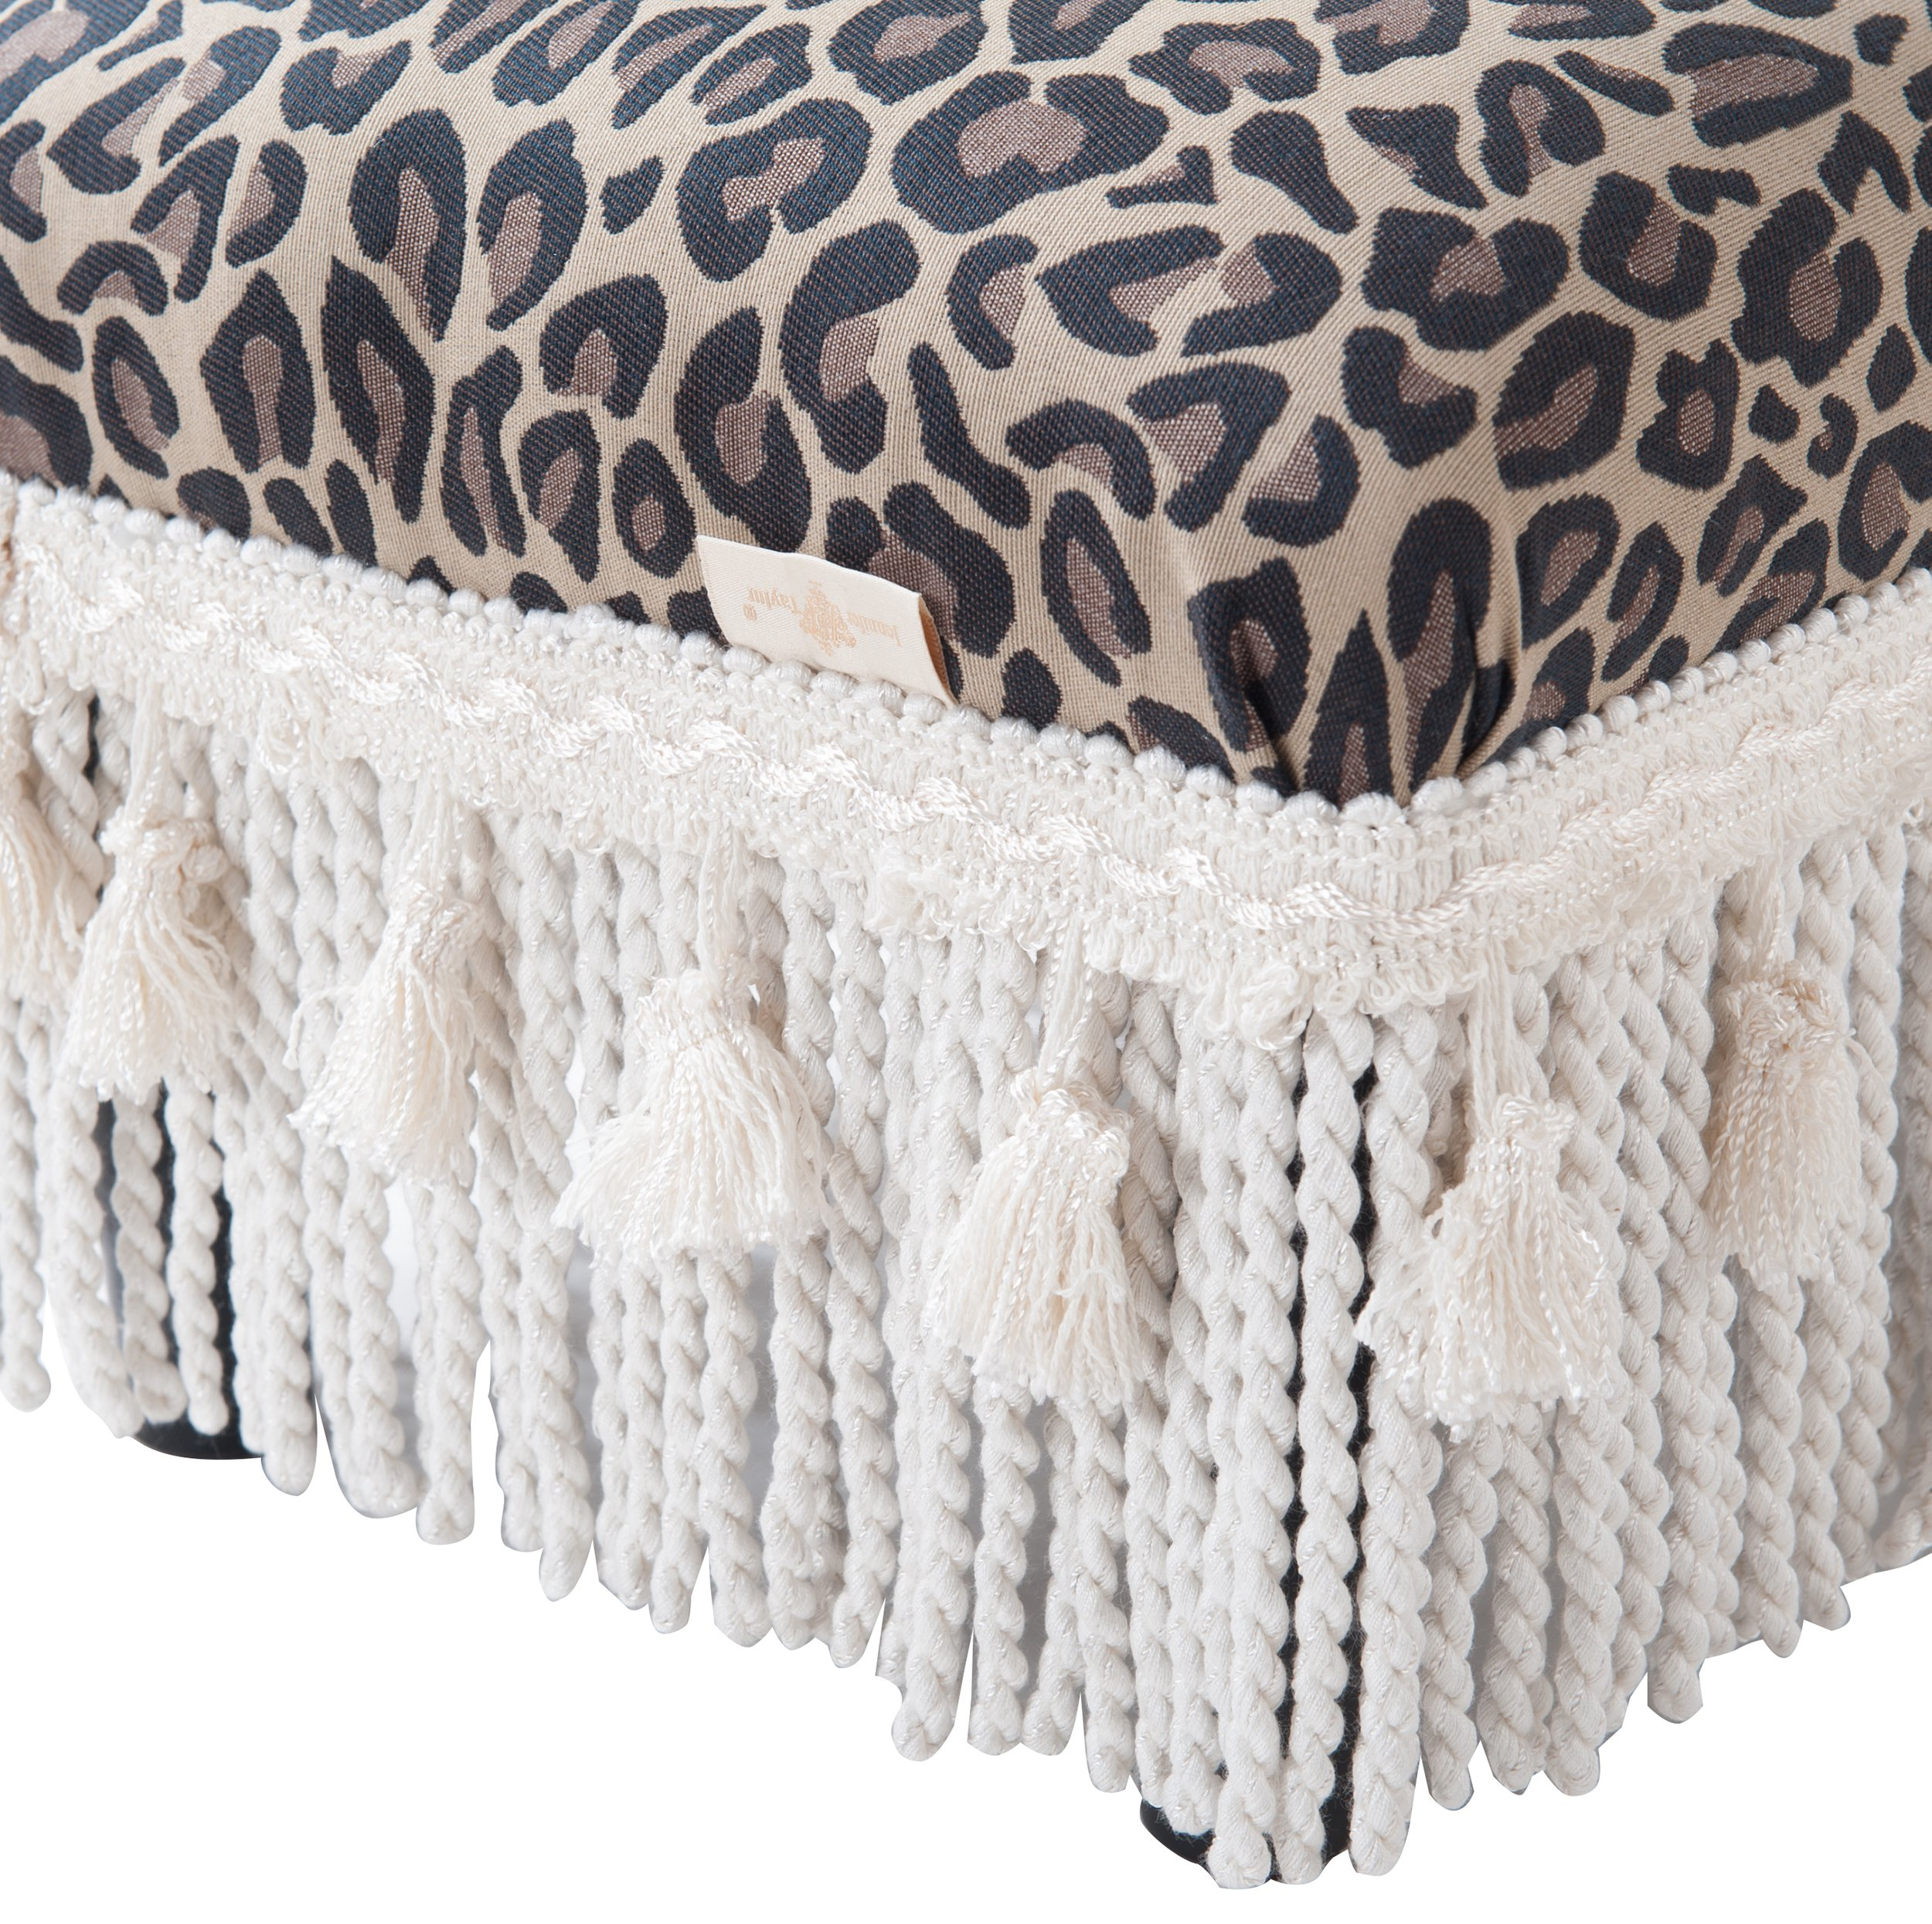 Jennifer Taylor Home 2318-655 Decorative Fiona Collection Traditional Upholstered Rayon Blend Footstool with Fringe and Trim Tassels, Multi-Colored, Brown/Beige by Jennifer Taylor Home (Image #5)